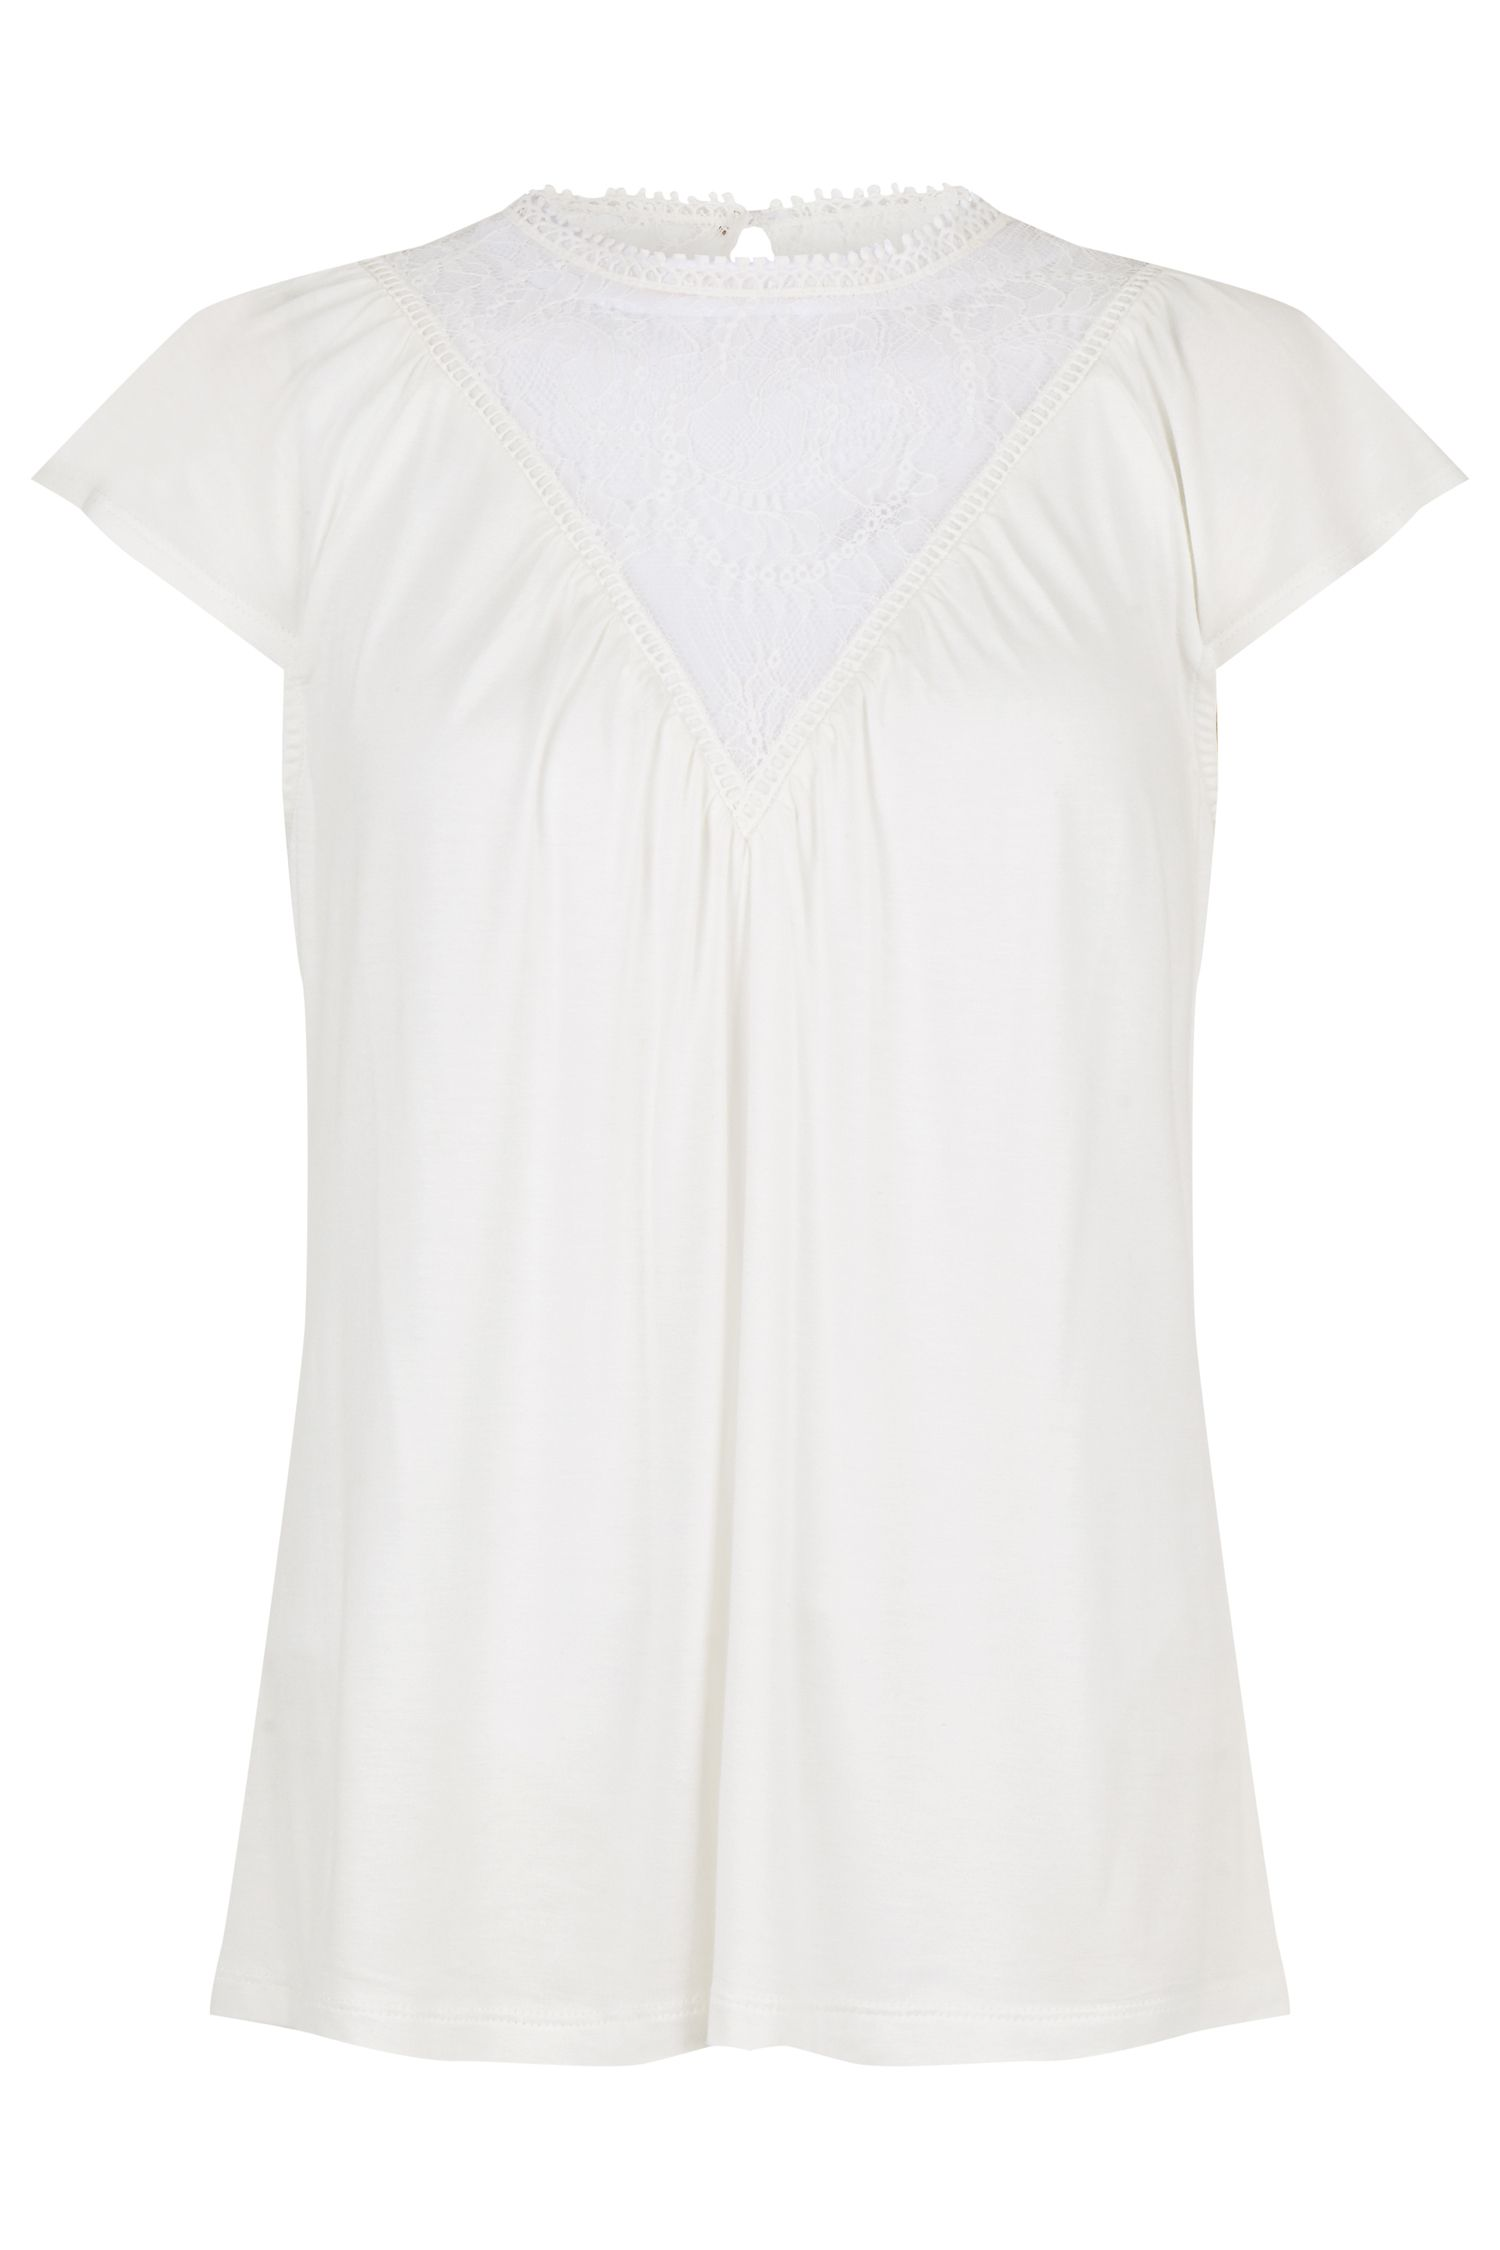 Damsel in a Dress Alicia Top, Cream